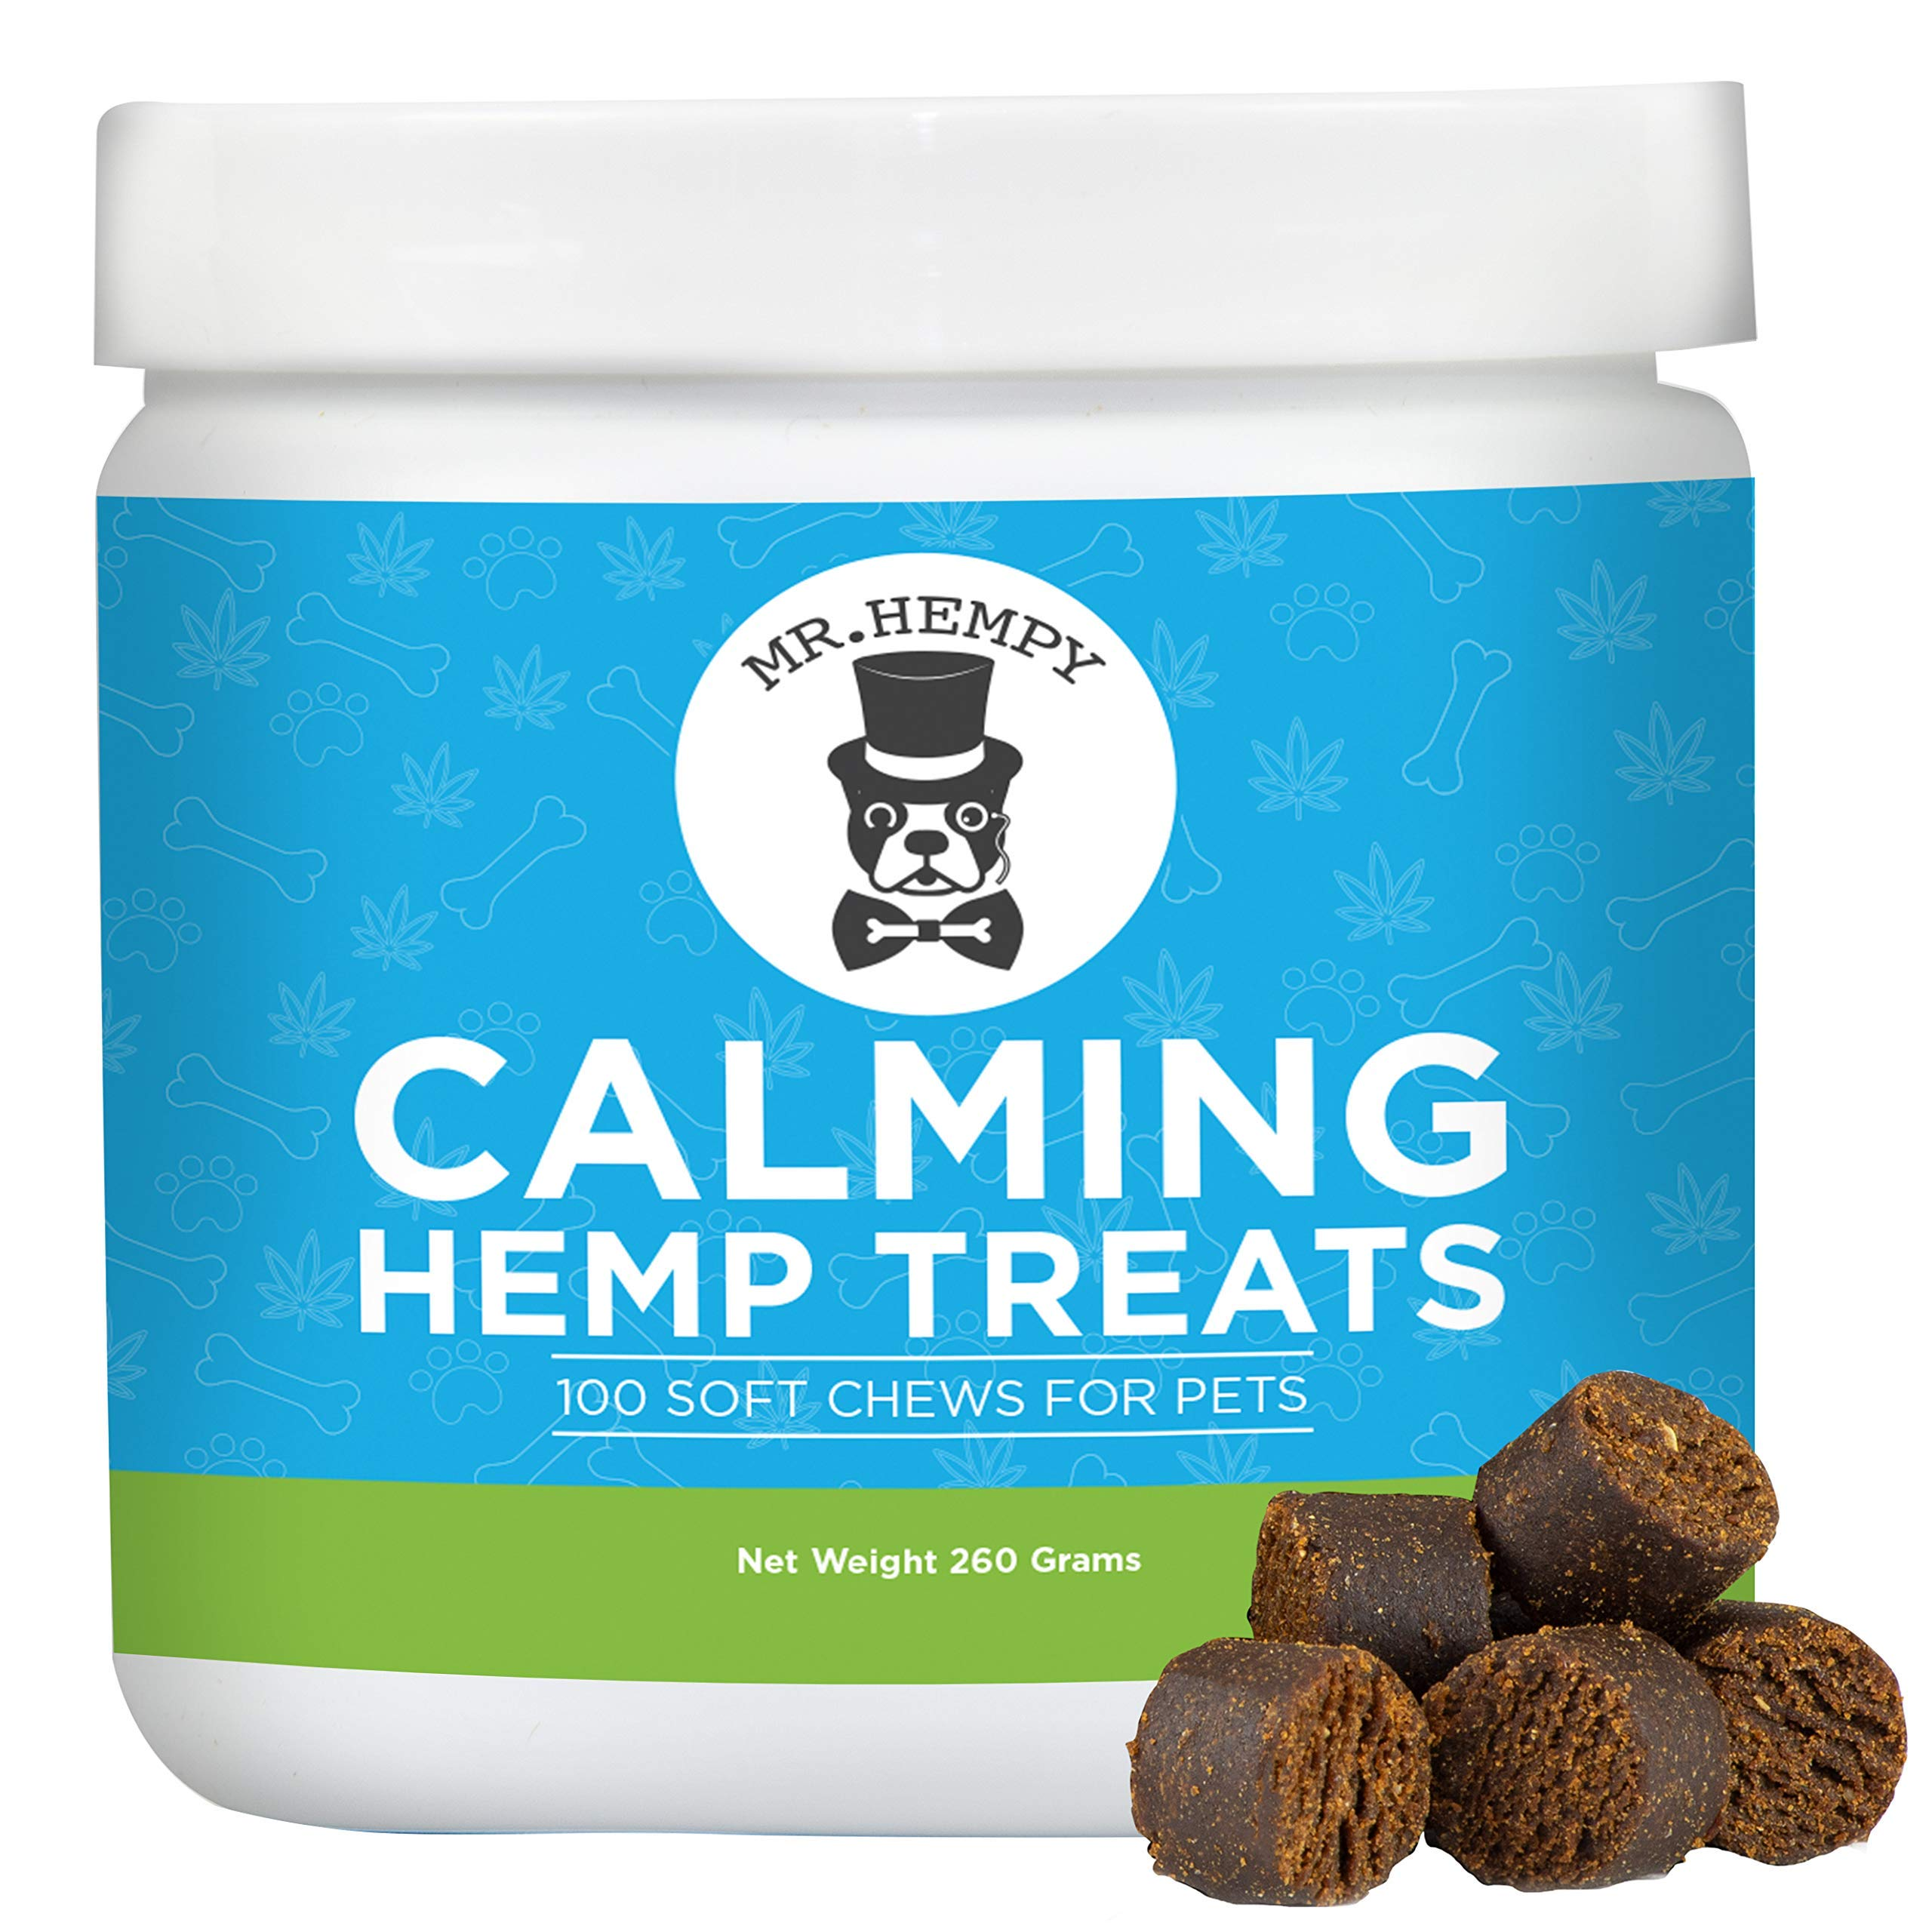 Calming Treats for Dogs - Great Anxiety and Stress Relief, Calming Aid and Composure Support - 100 Tasty Chews - with Hemp Oil, Melatonin, Thiamine and Camomile, Made in USA by Mr. Hempy